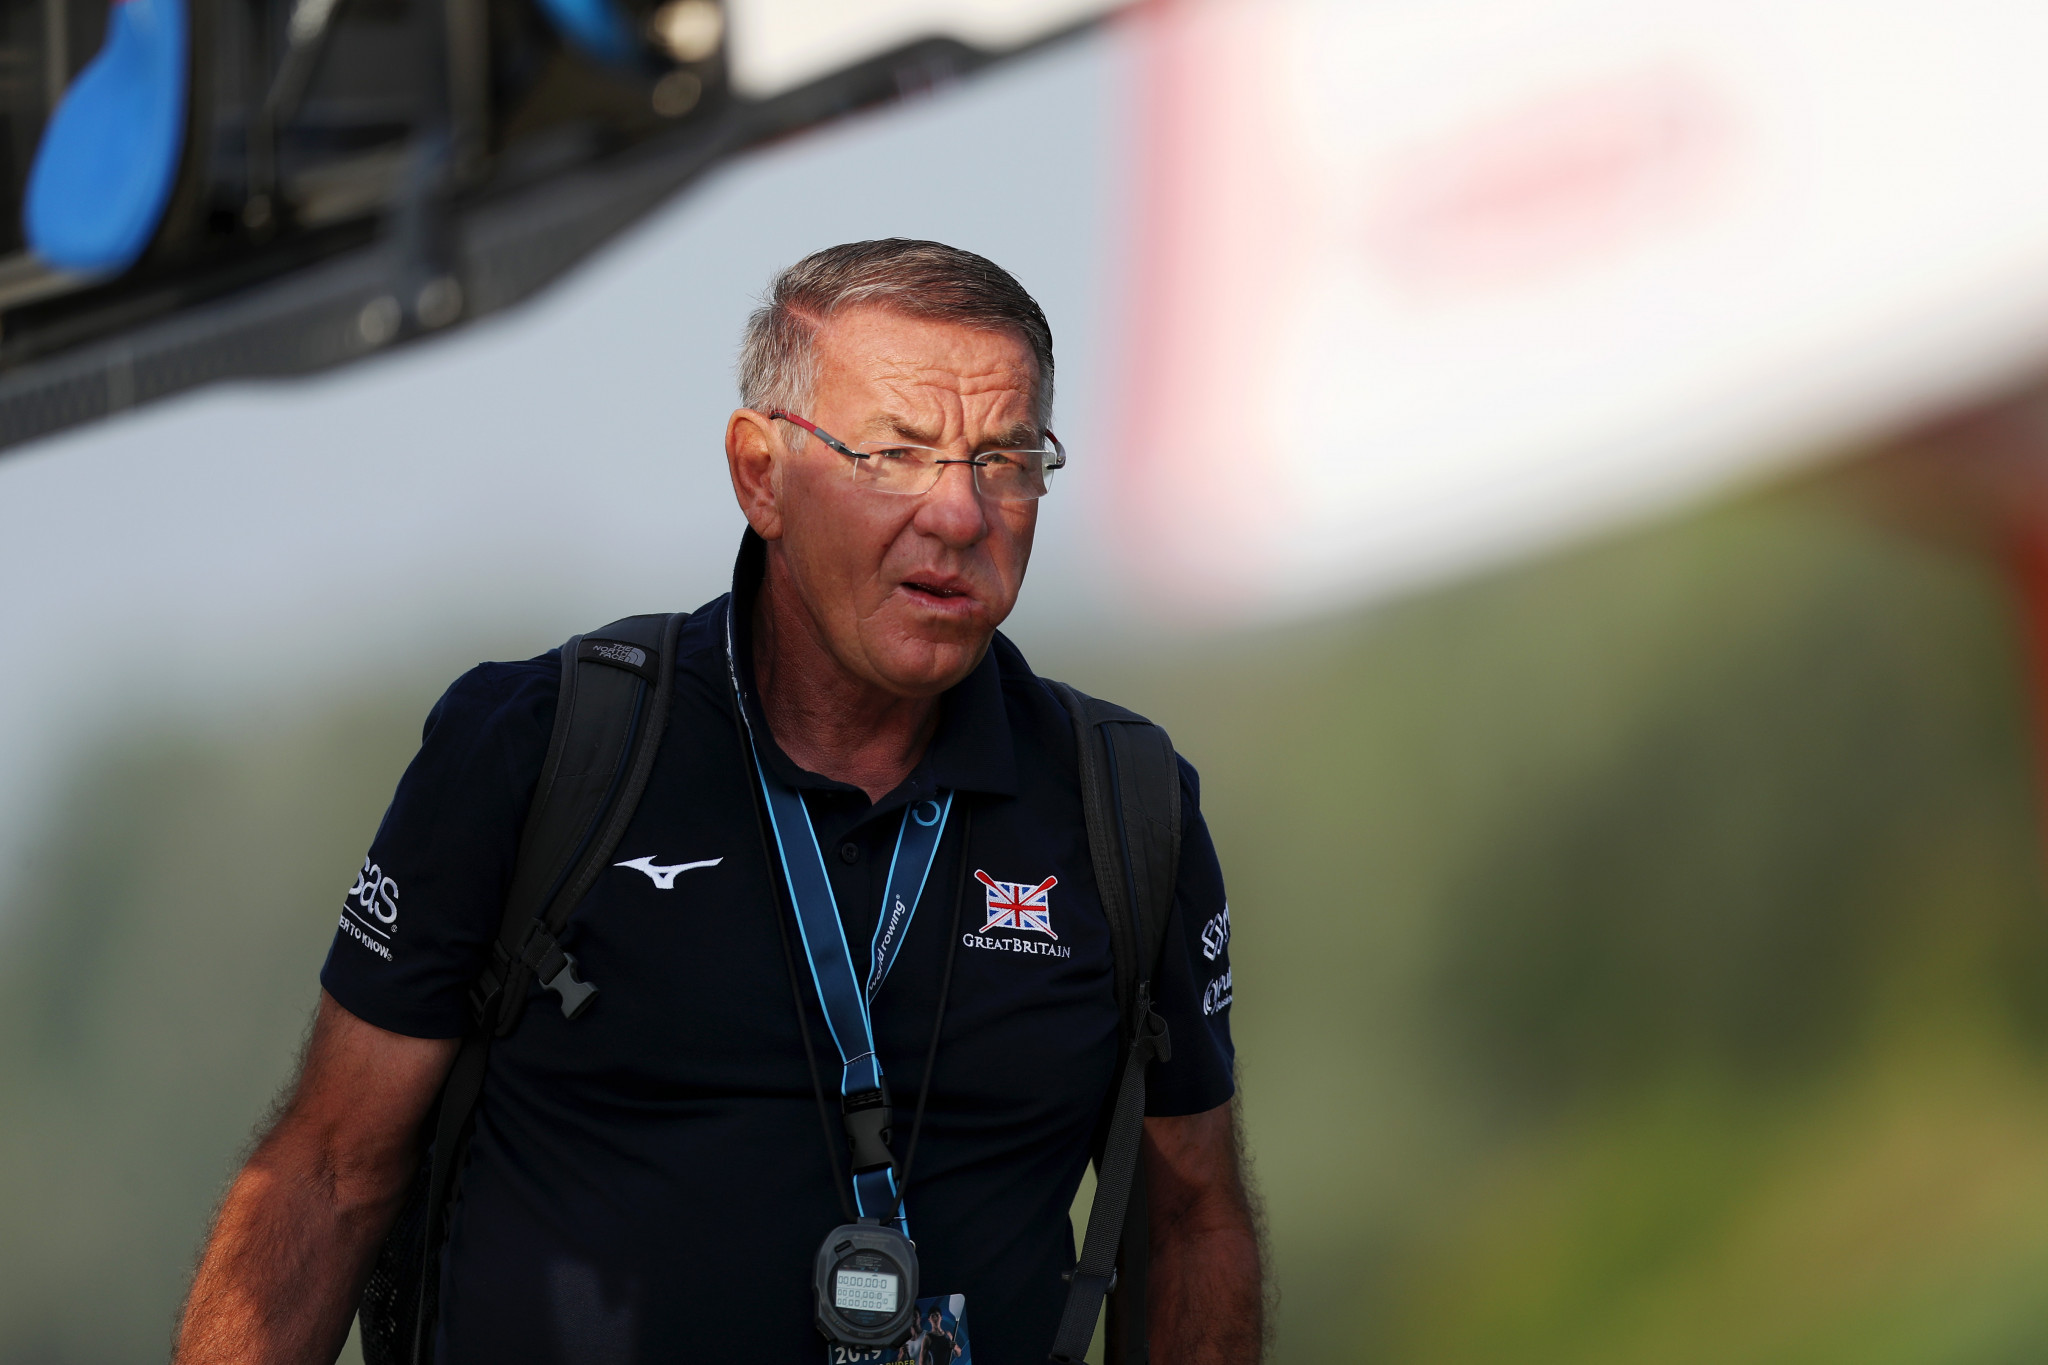 Grobler steps down as British Rowing head coach after 29 years